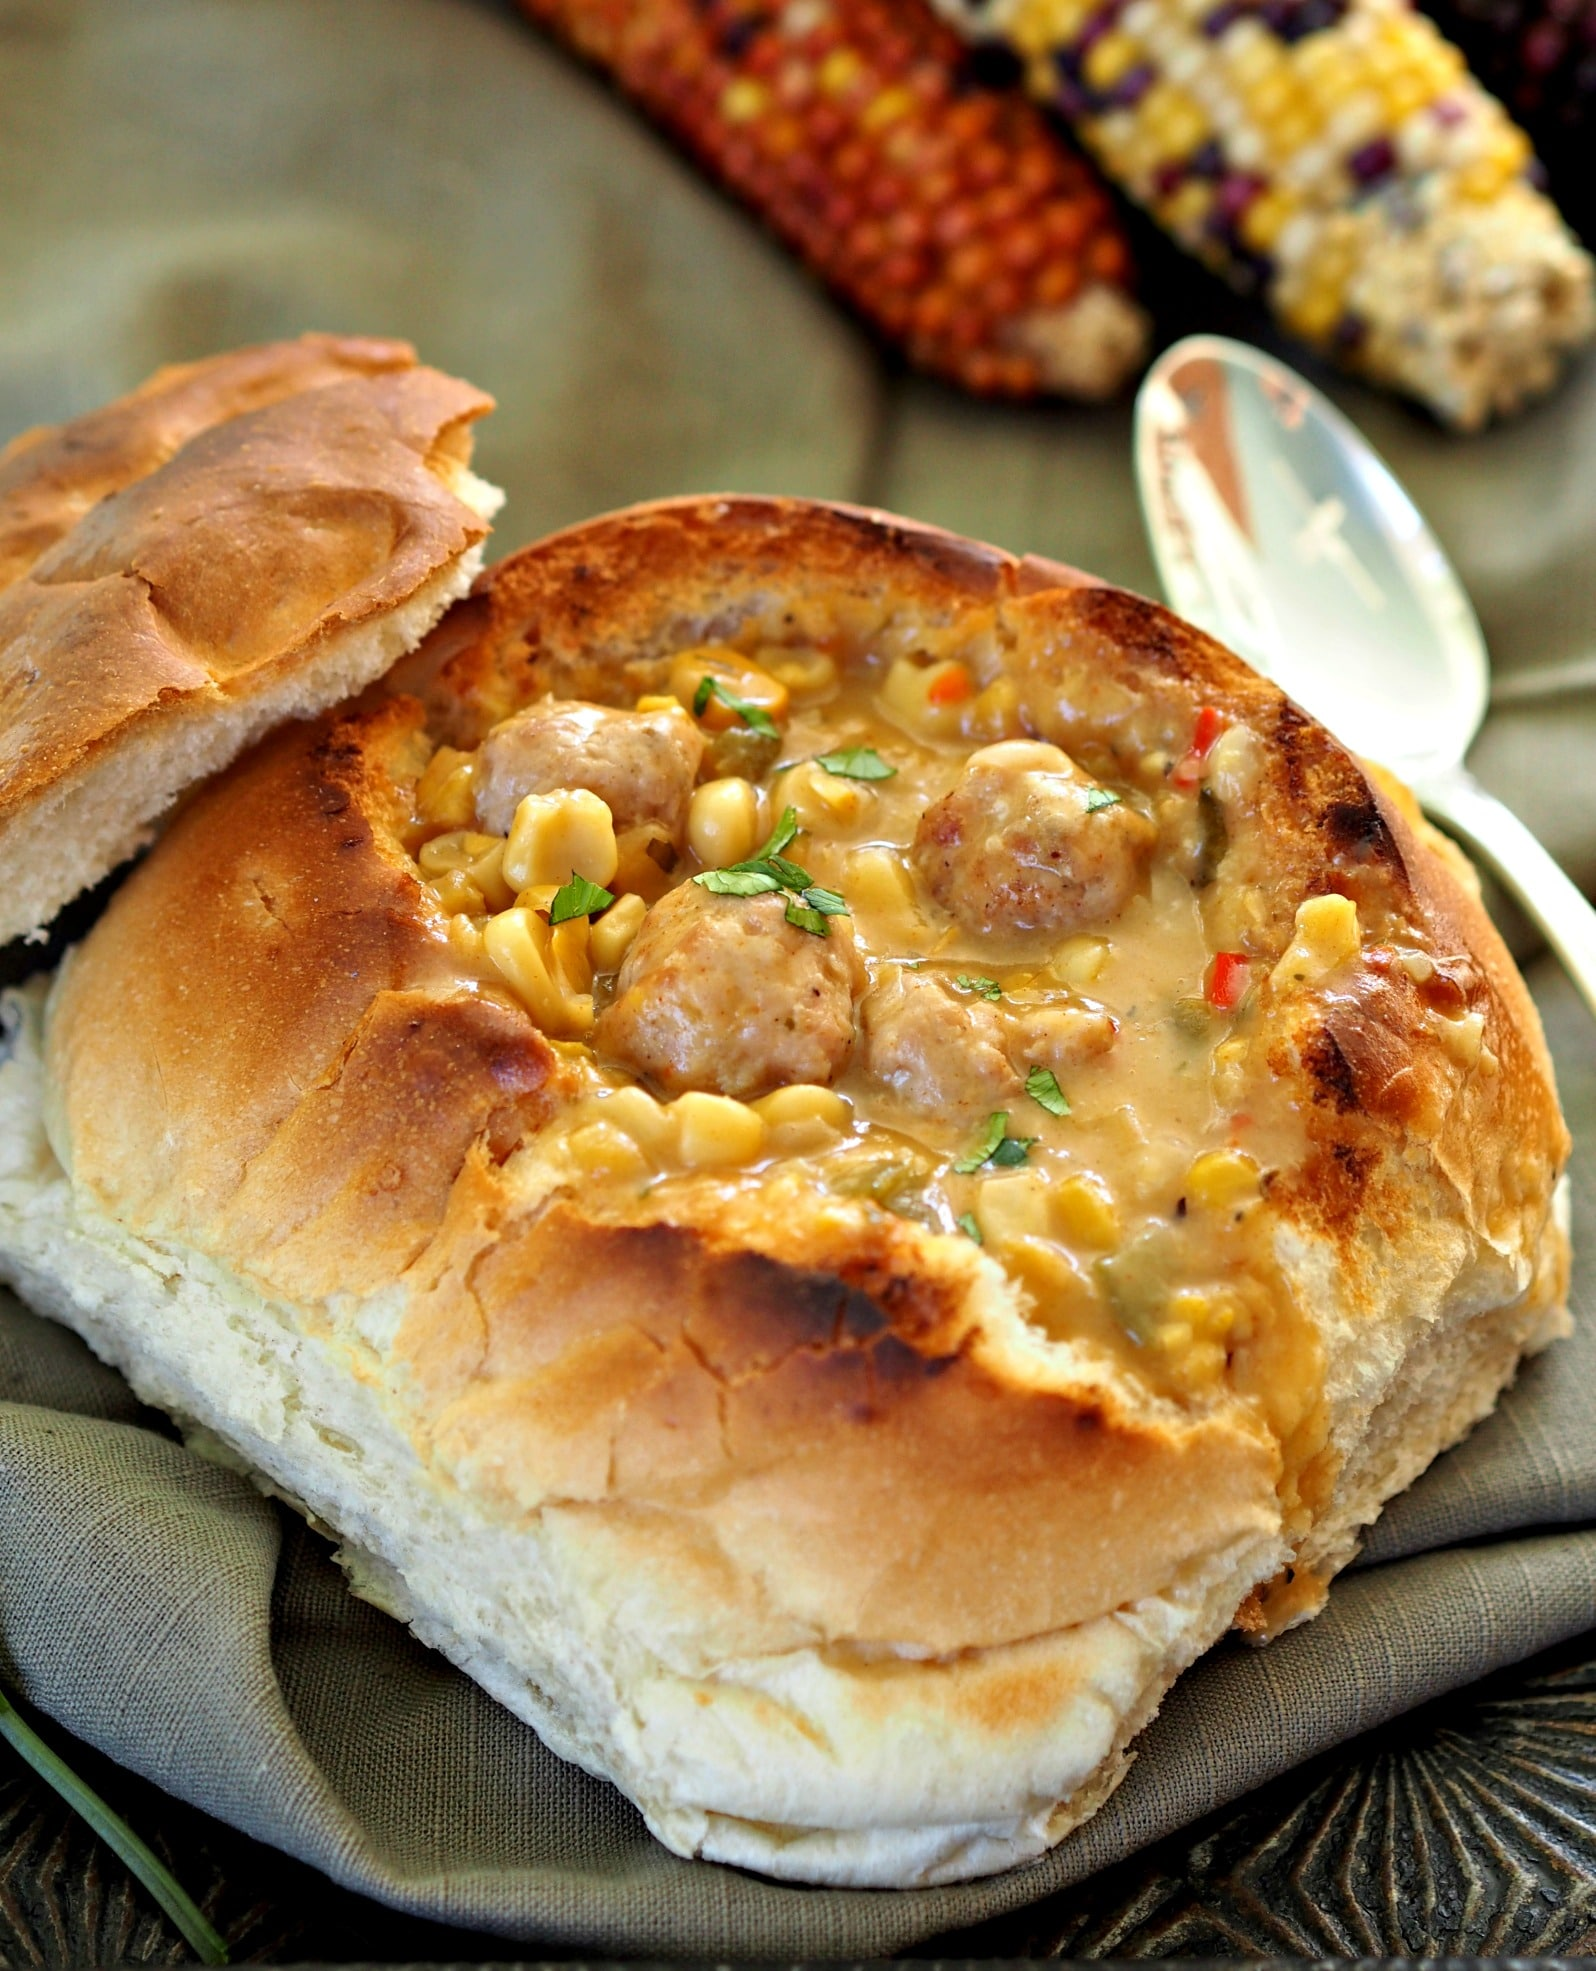 Italian Sausage & Corn Chowder - a soup that wraps you in its warmth – like being hugged from the inside. simplysated